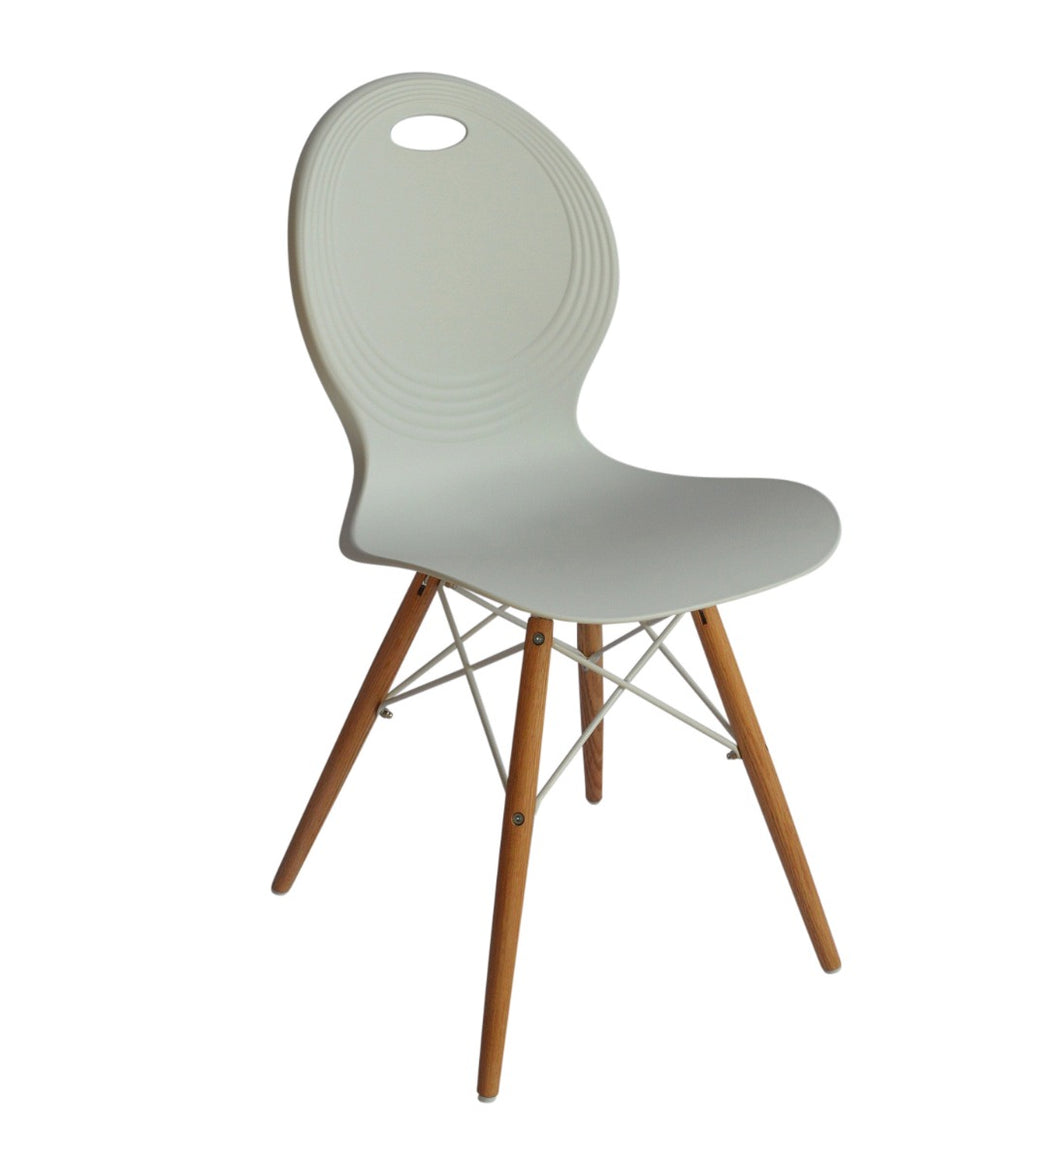 Set of 2 Eames Look Trenz dining chair white with solid natural oak legs